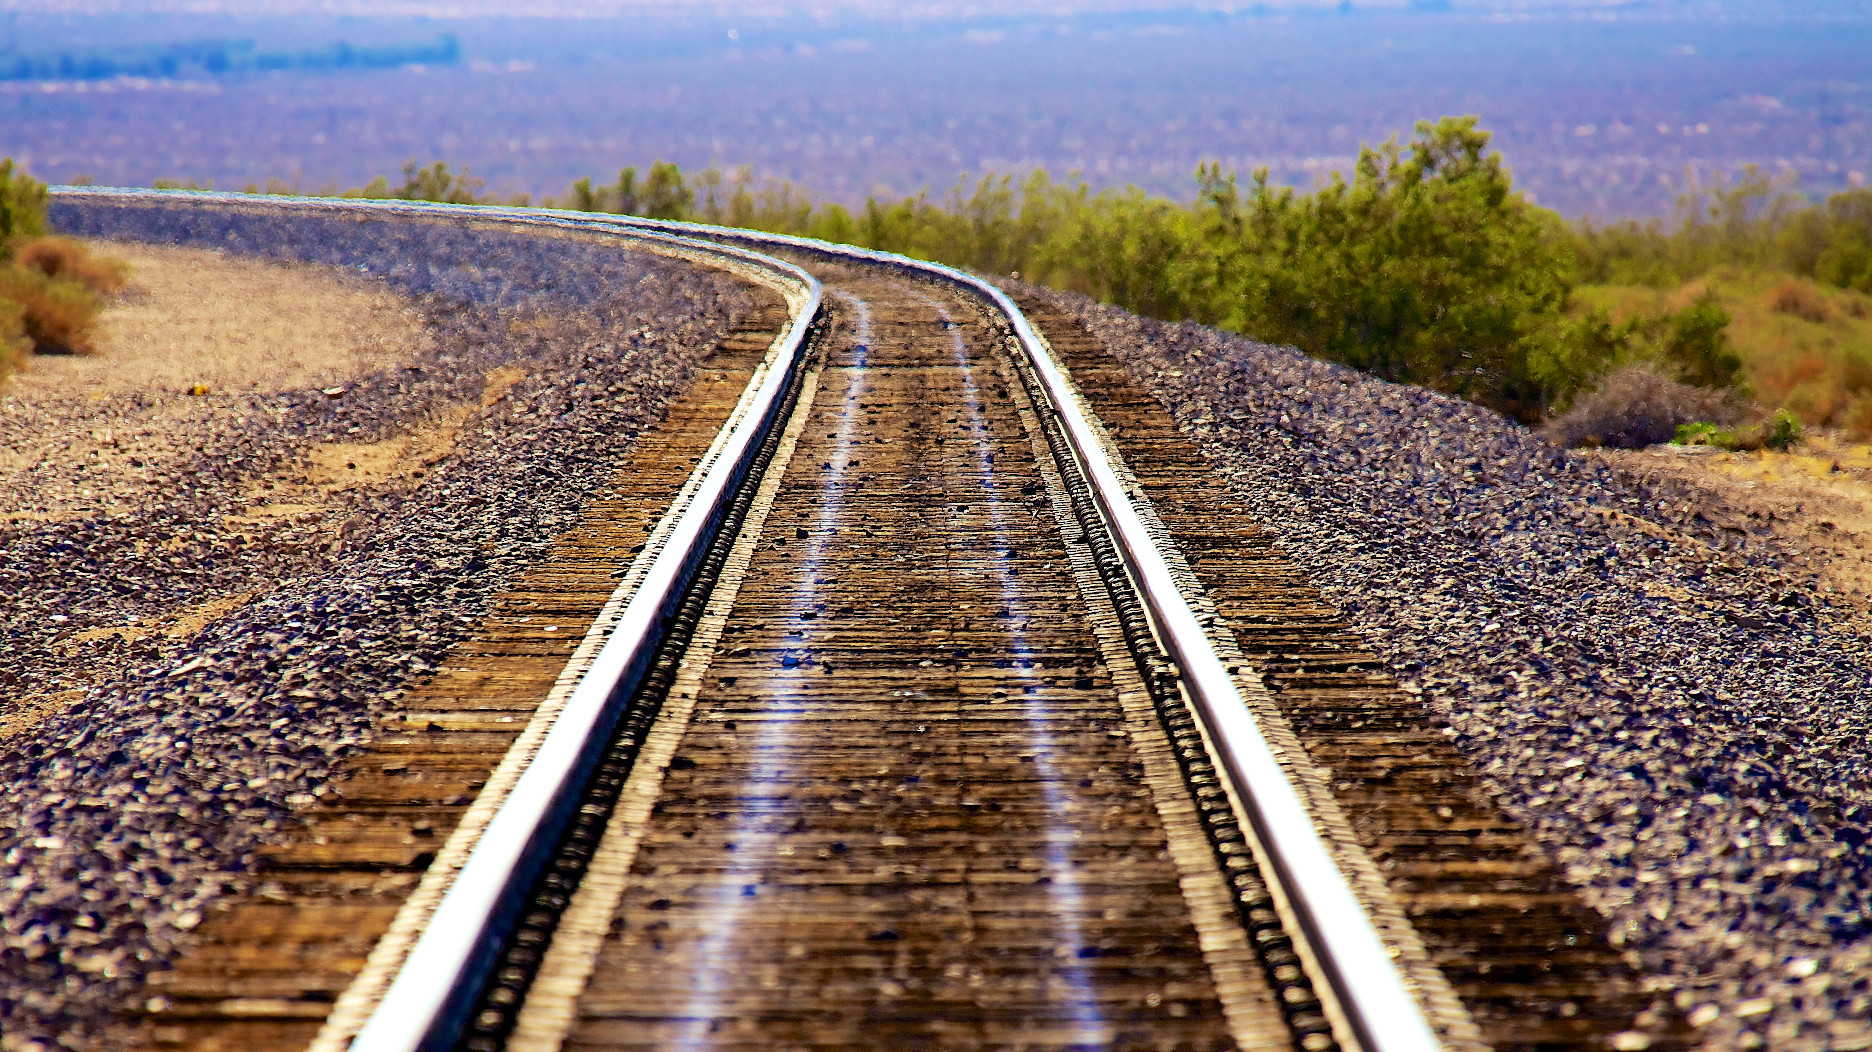 Railroad in the heat of Mojave